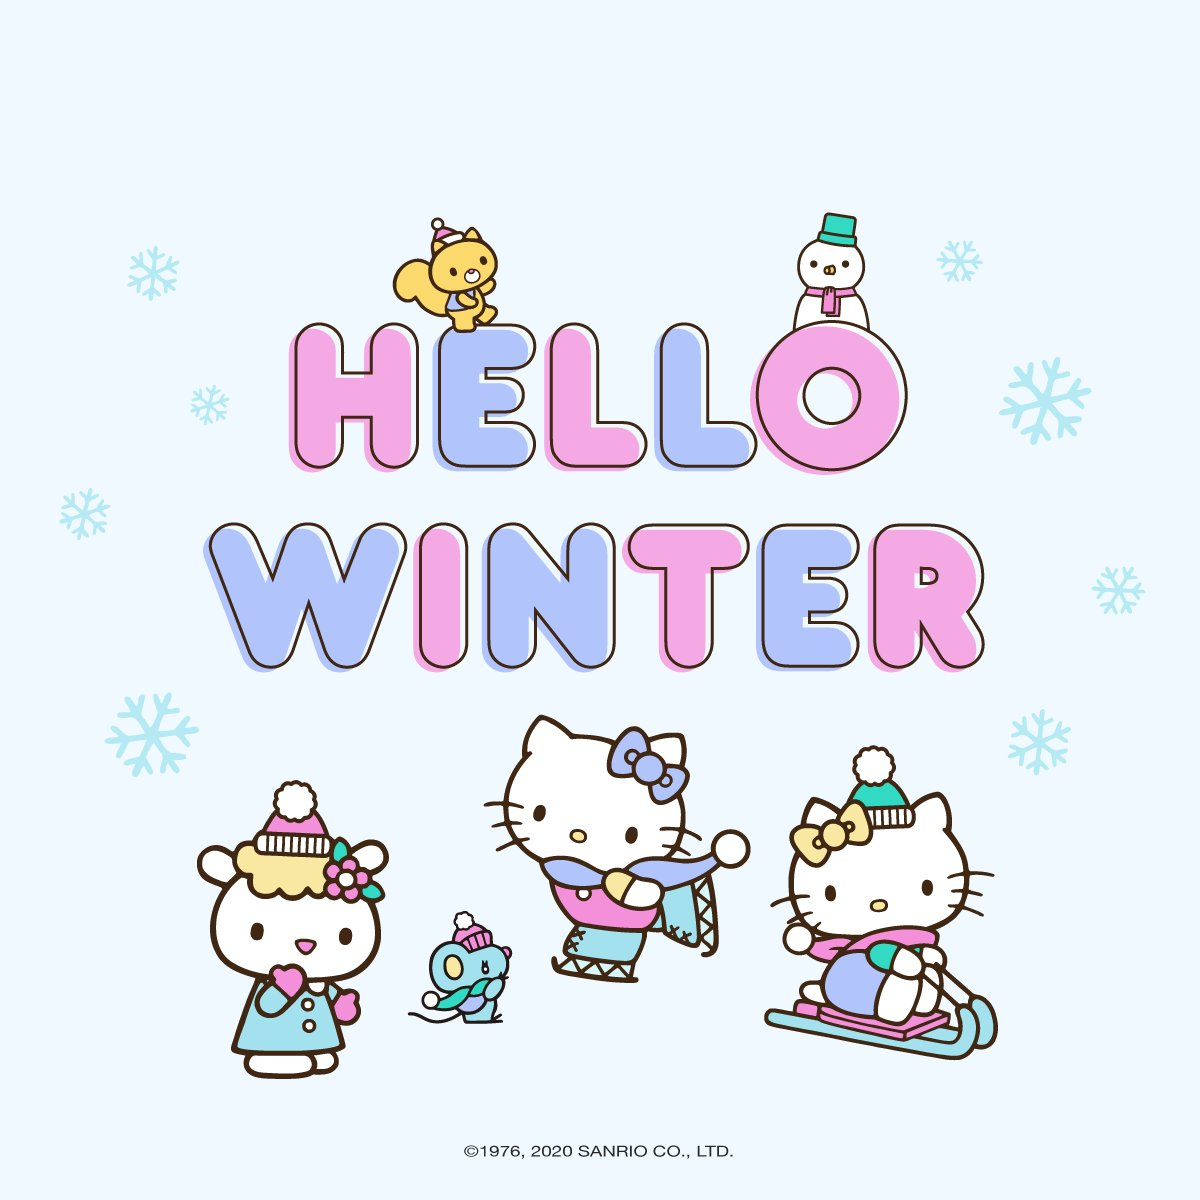 Happy #FirstDayofWinter! ❄️💕 What's your favorite winter activity?